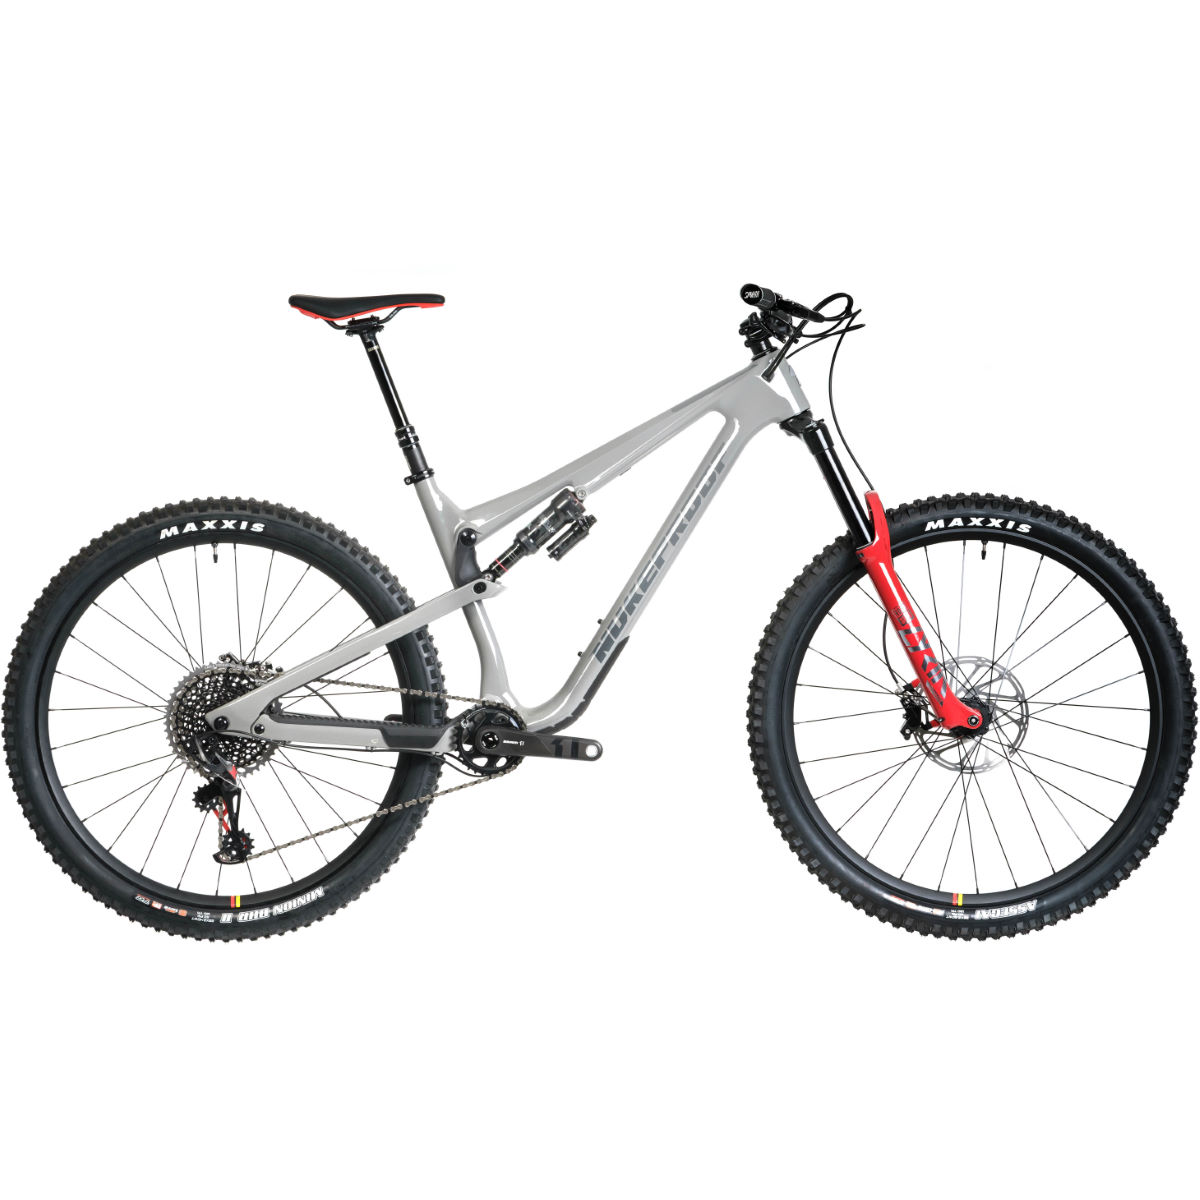 Nukeproof Nukeproof Reactor 290 RS Carbon Bike (XO1 Eagle - 2020)   Full Suspension Mountain Bikes